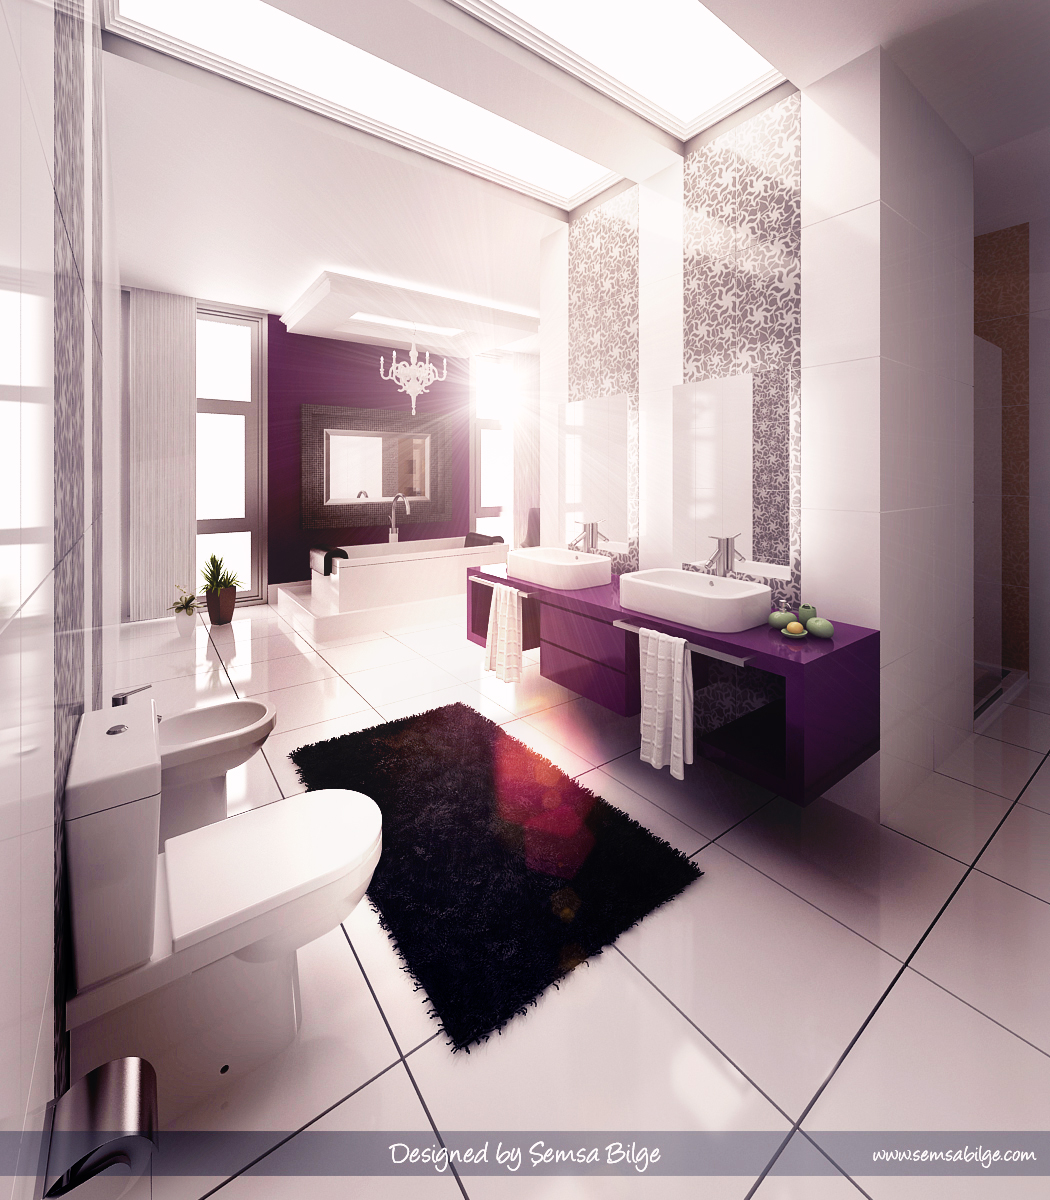 Beautiful bathroom designs ideas interior design for Bathroom decoration ideas